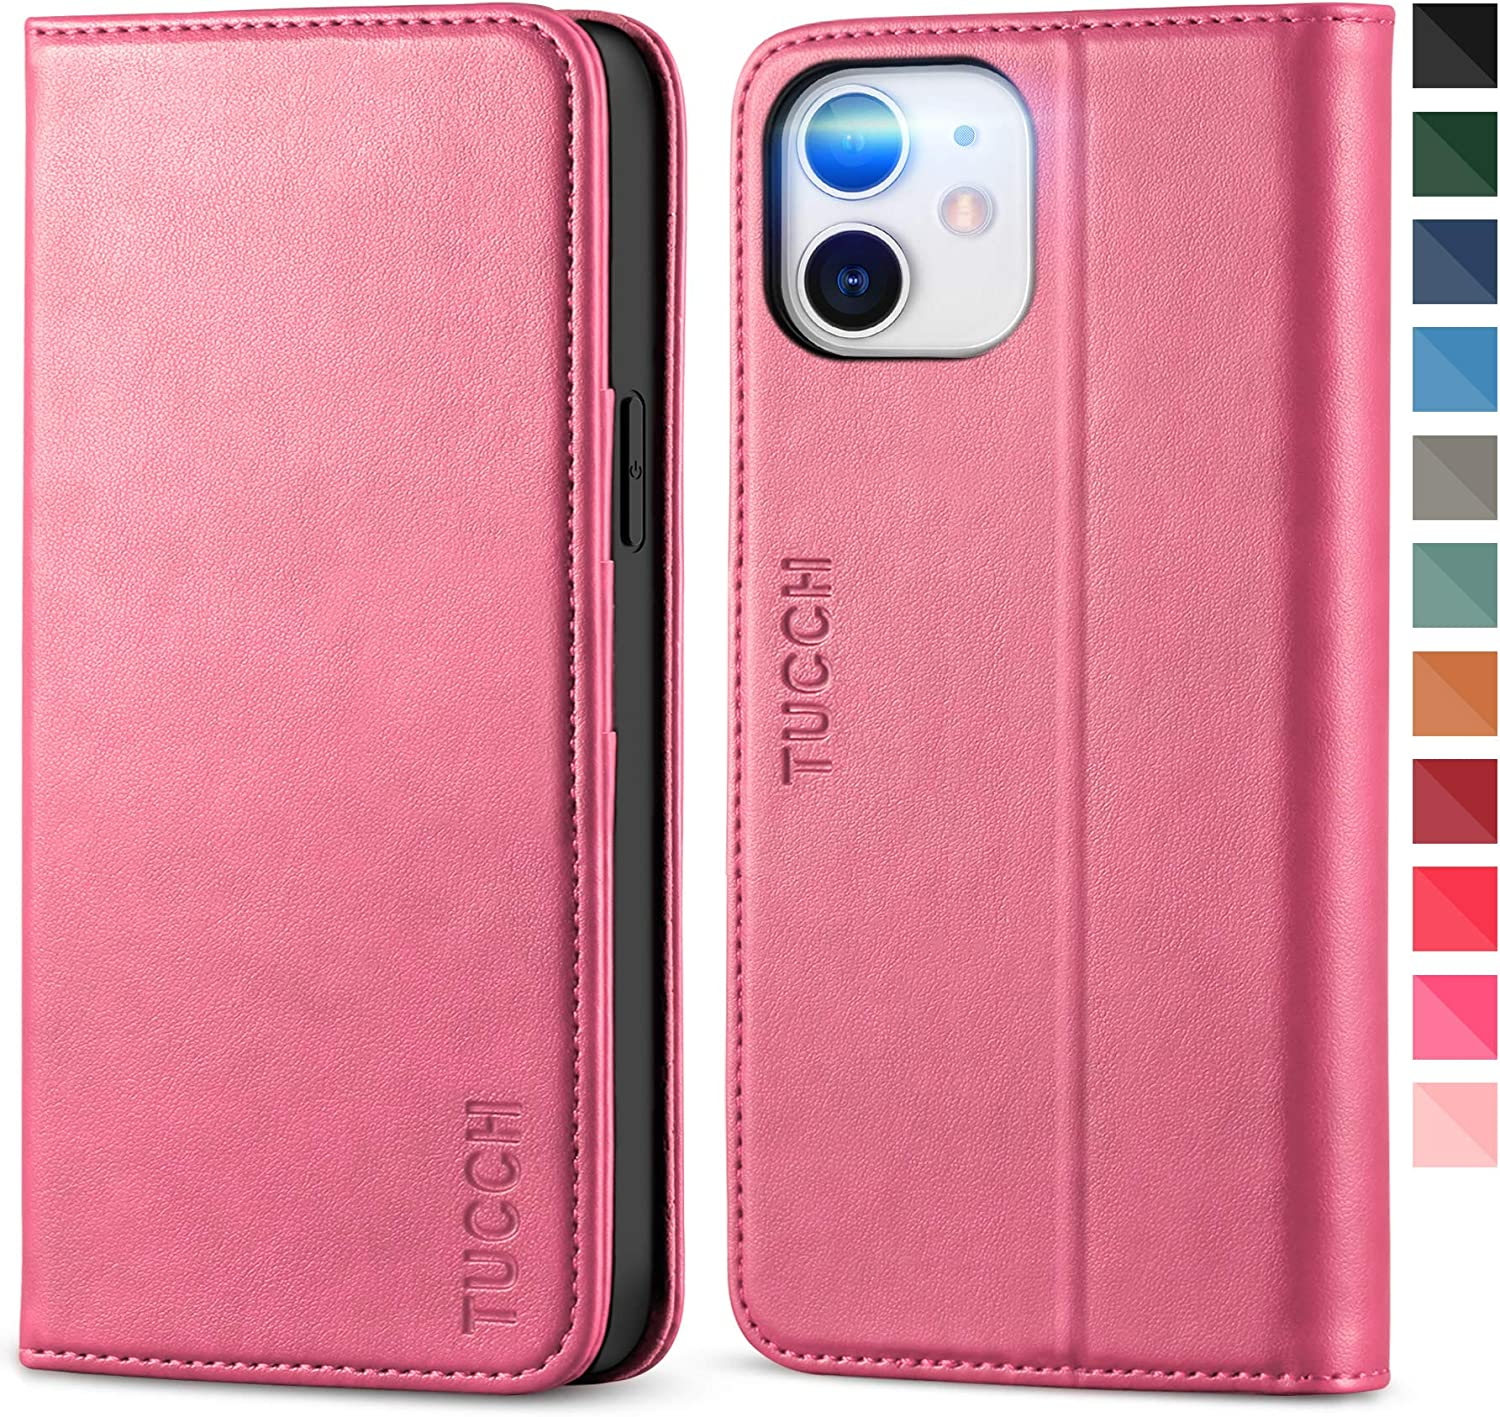 TUCCH Wallet Case for iPhone 12 Pro/iPhone 12 5G, Credit Card Holder Money Slot Case Wallet, Kickstand Folio Flip Cover [TPU Interior Protective Case] Compatible with iPhone 12/12 Pro, Hot Pink